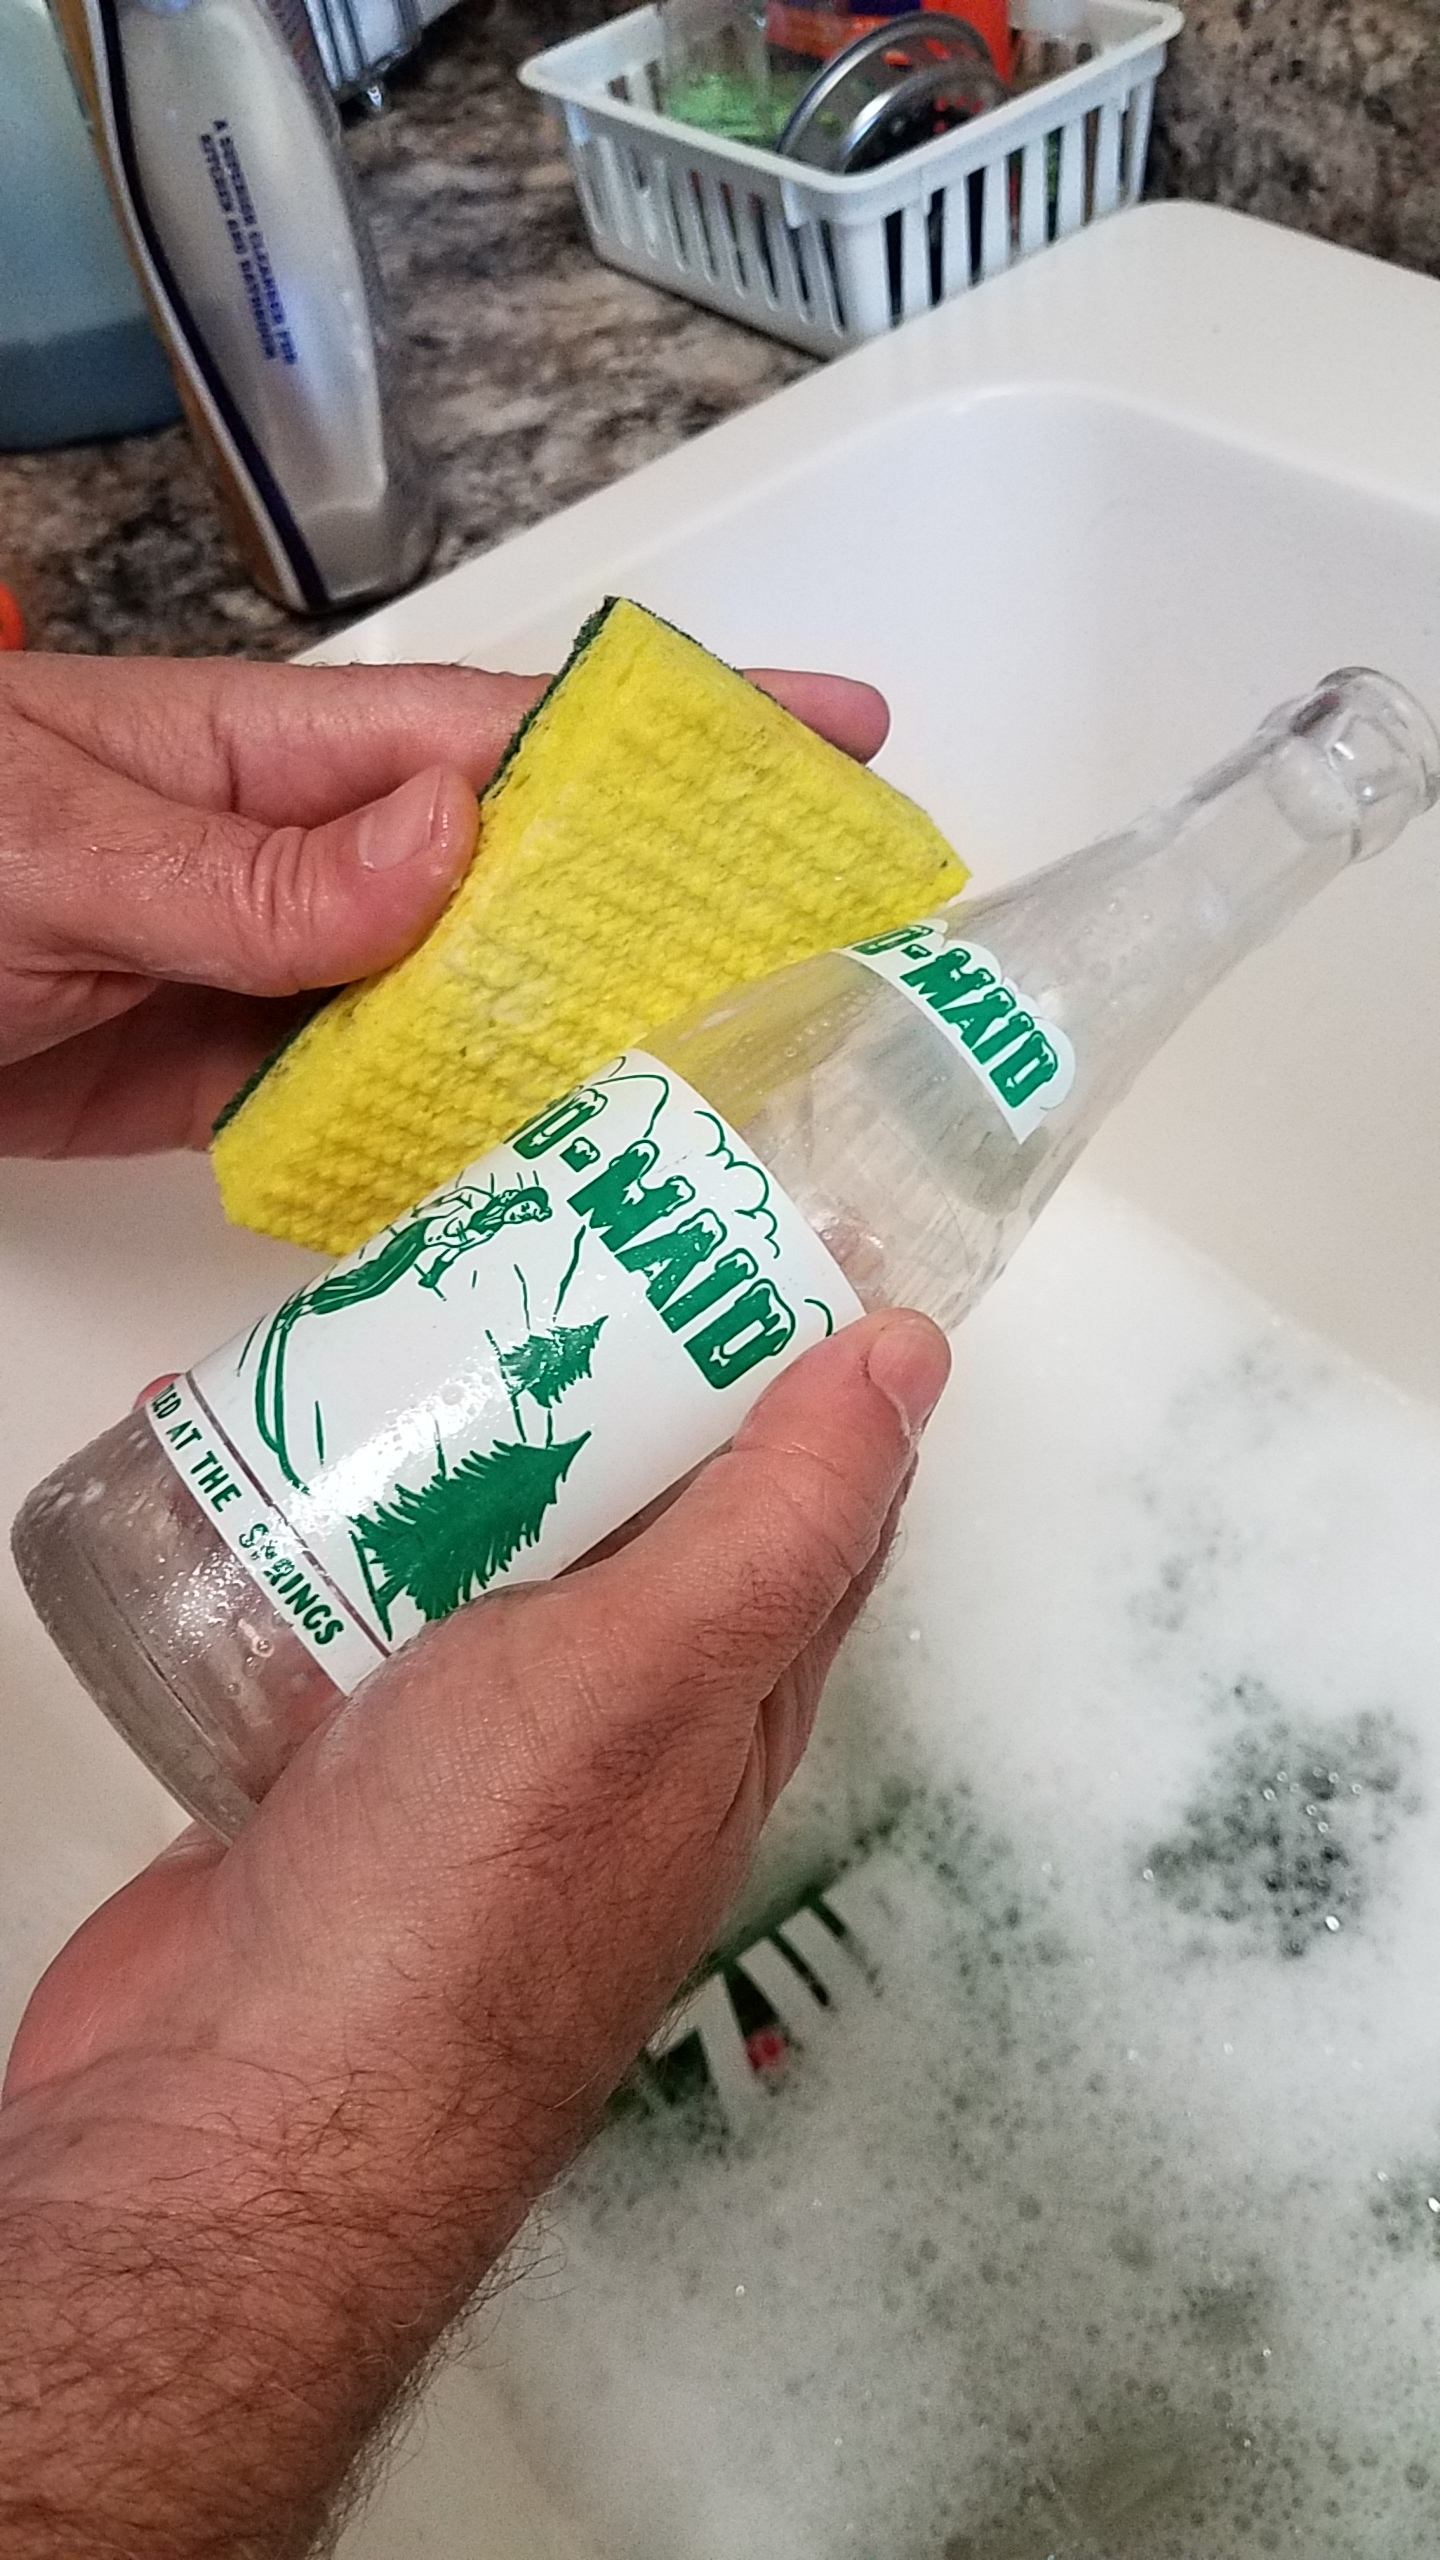 Cleaning with Soft Pad